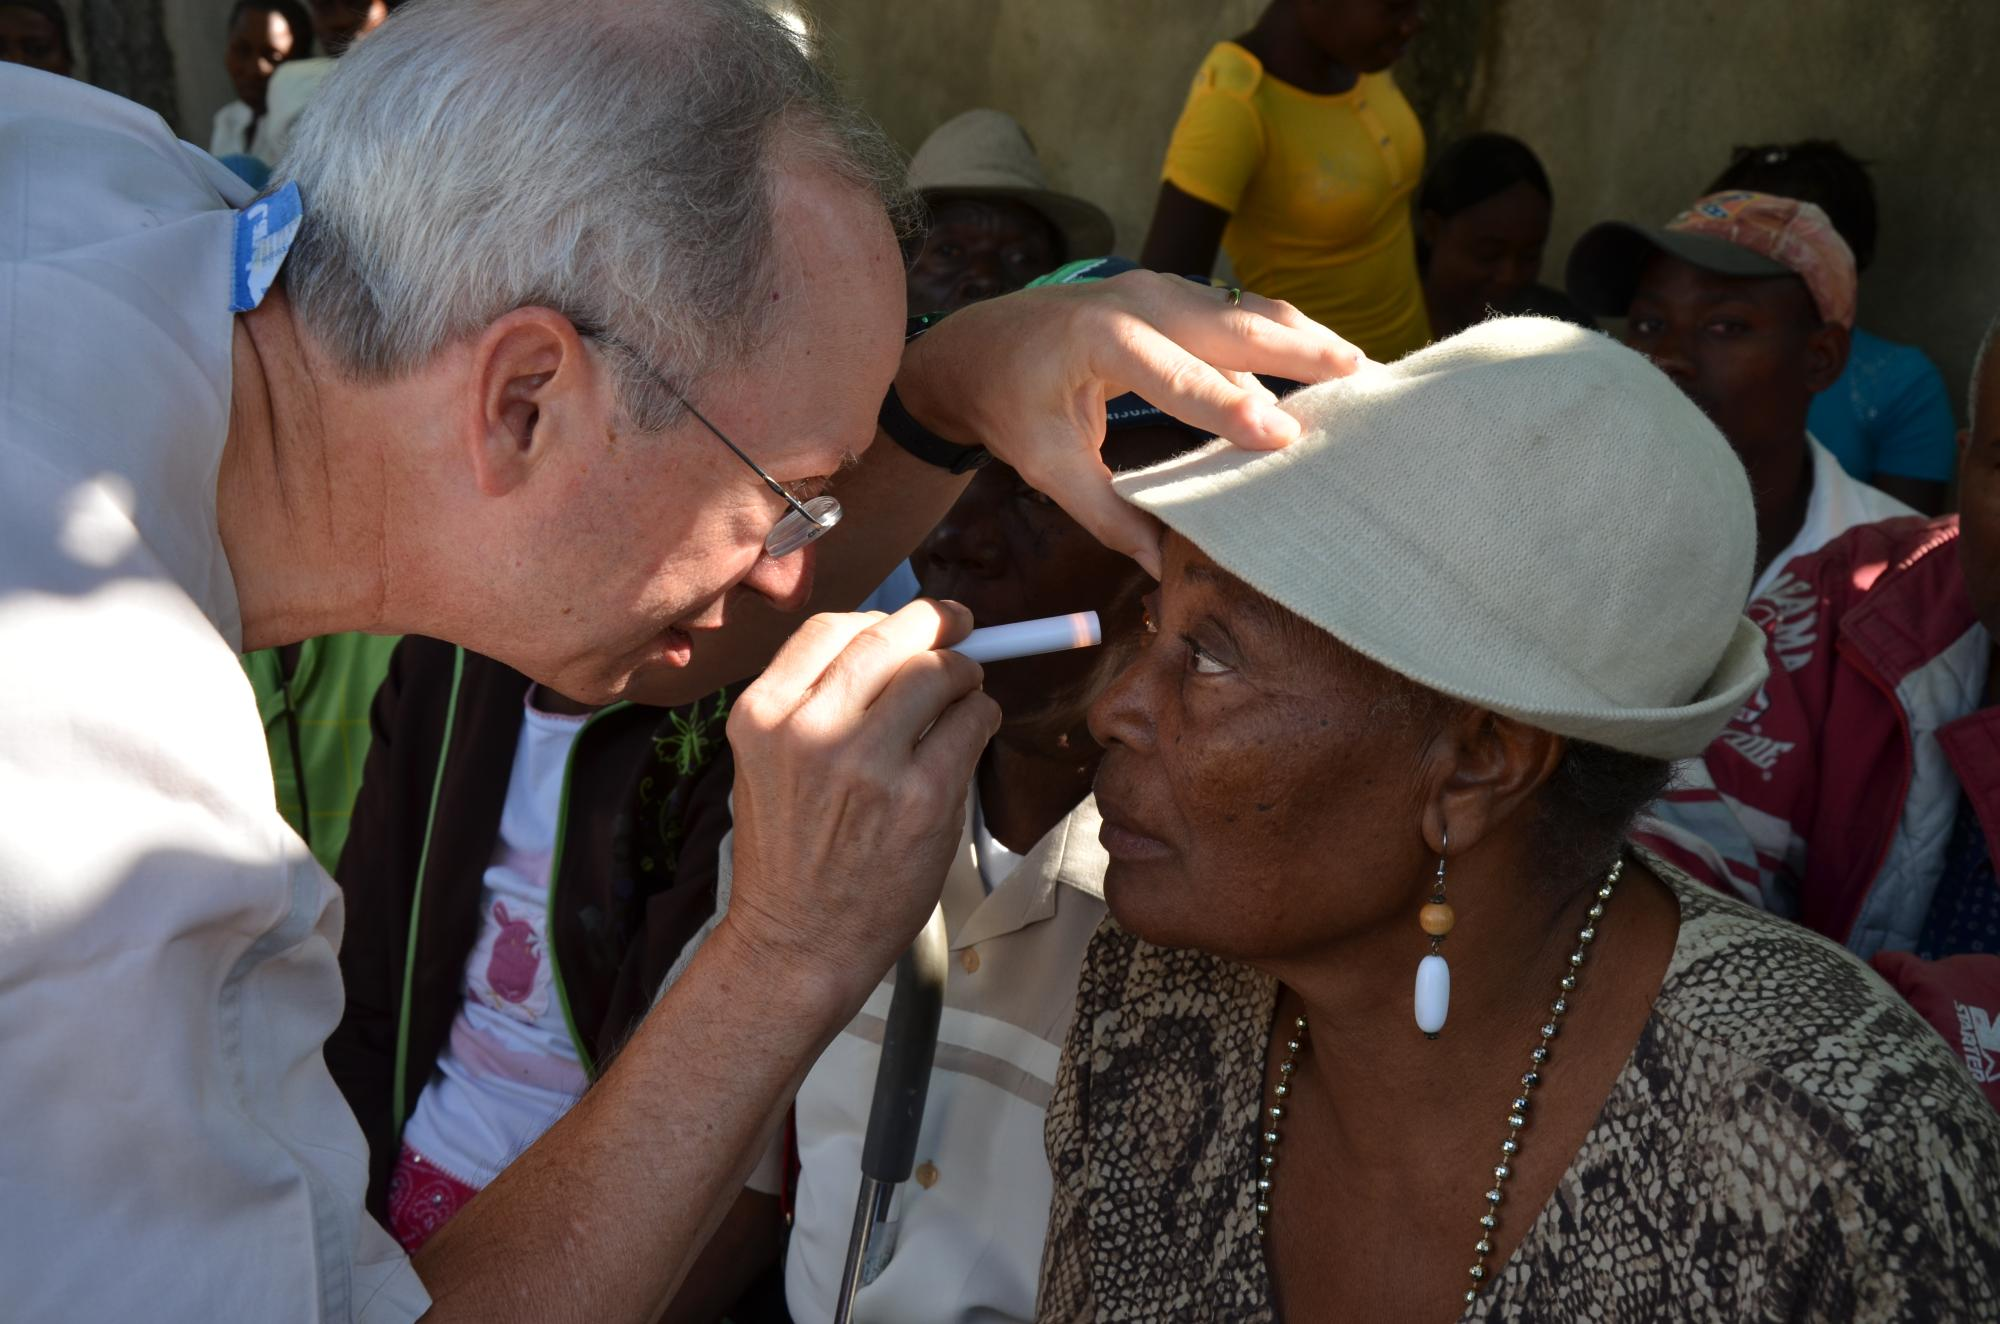 Haiti2013_Dr_Sloan_eye_surgeon_flashlight_exam_398.jpg